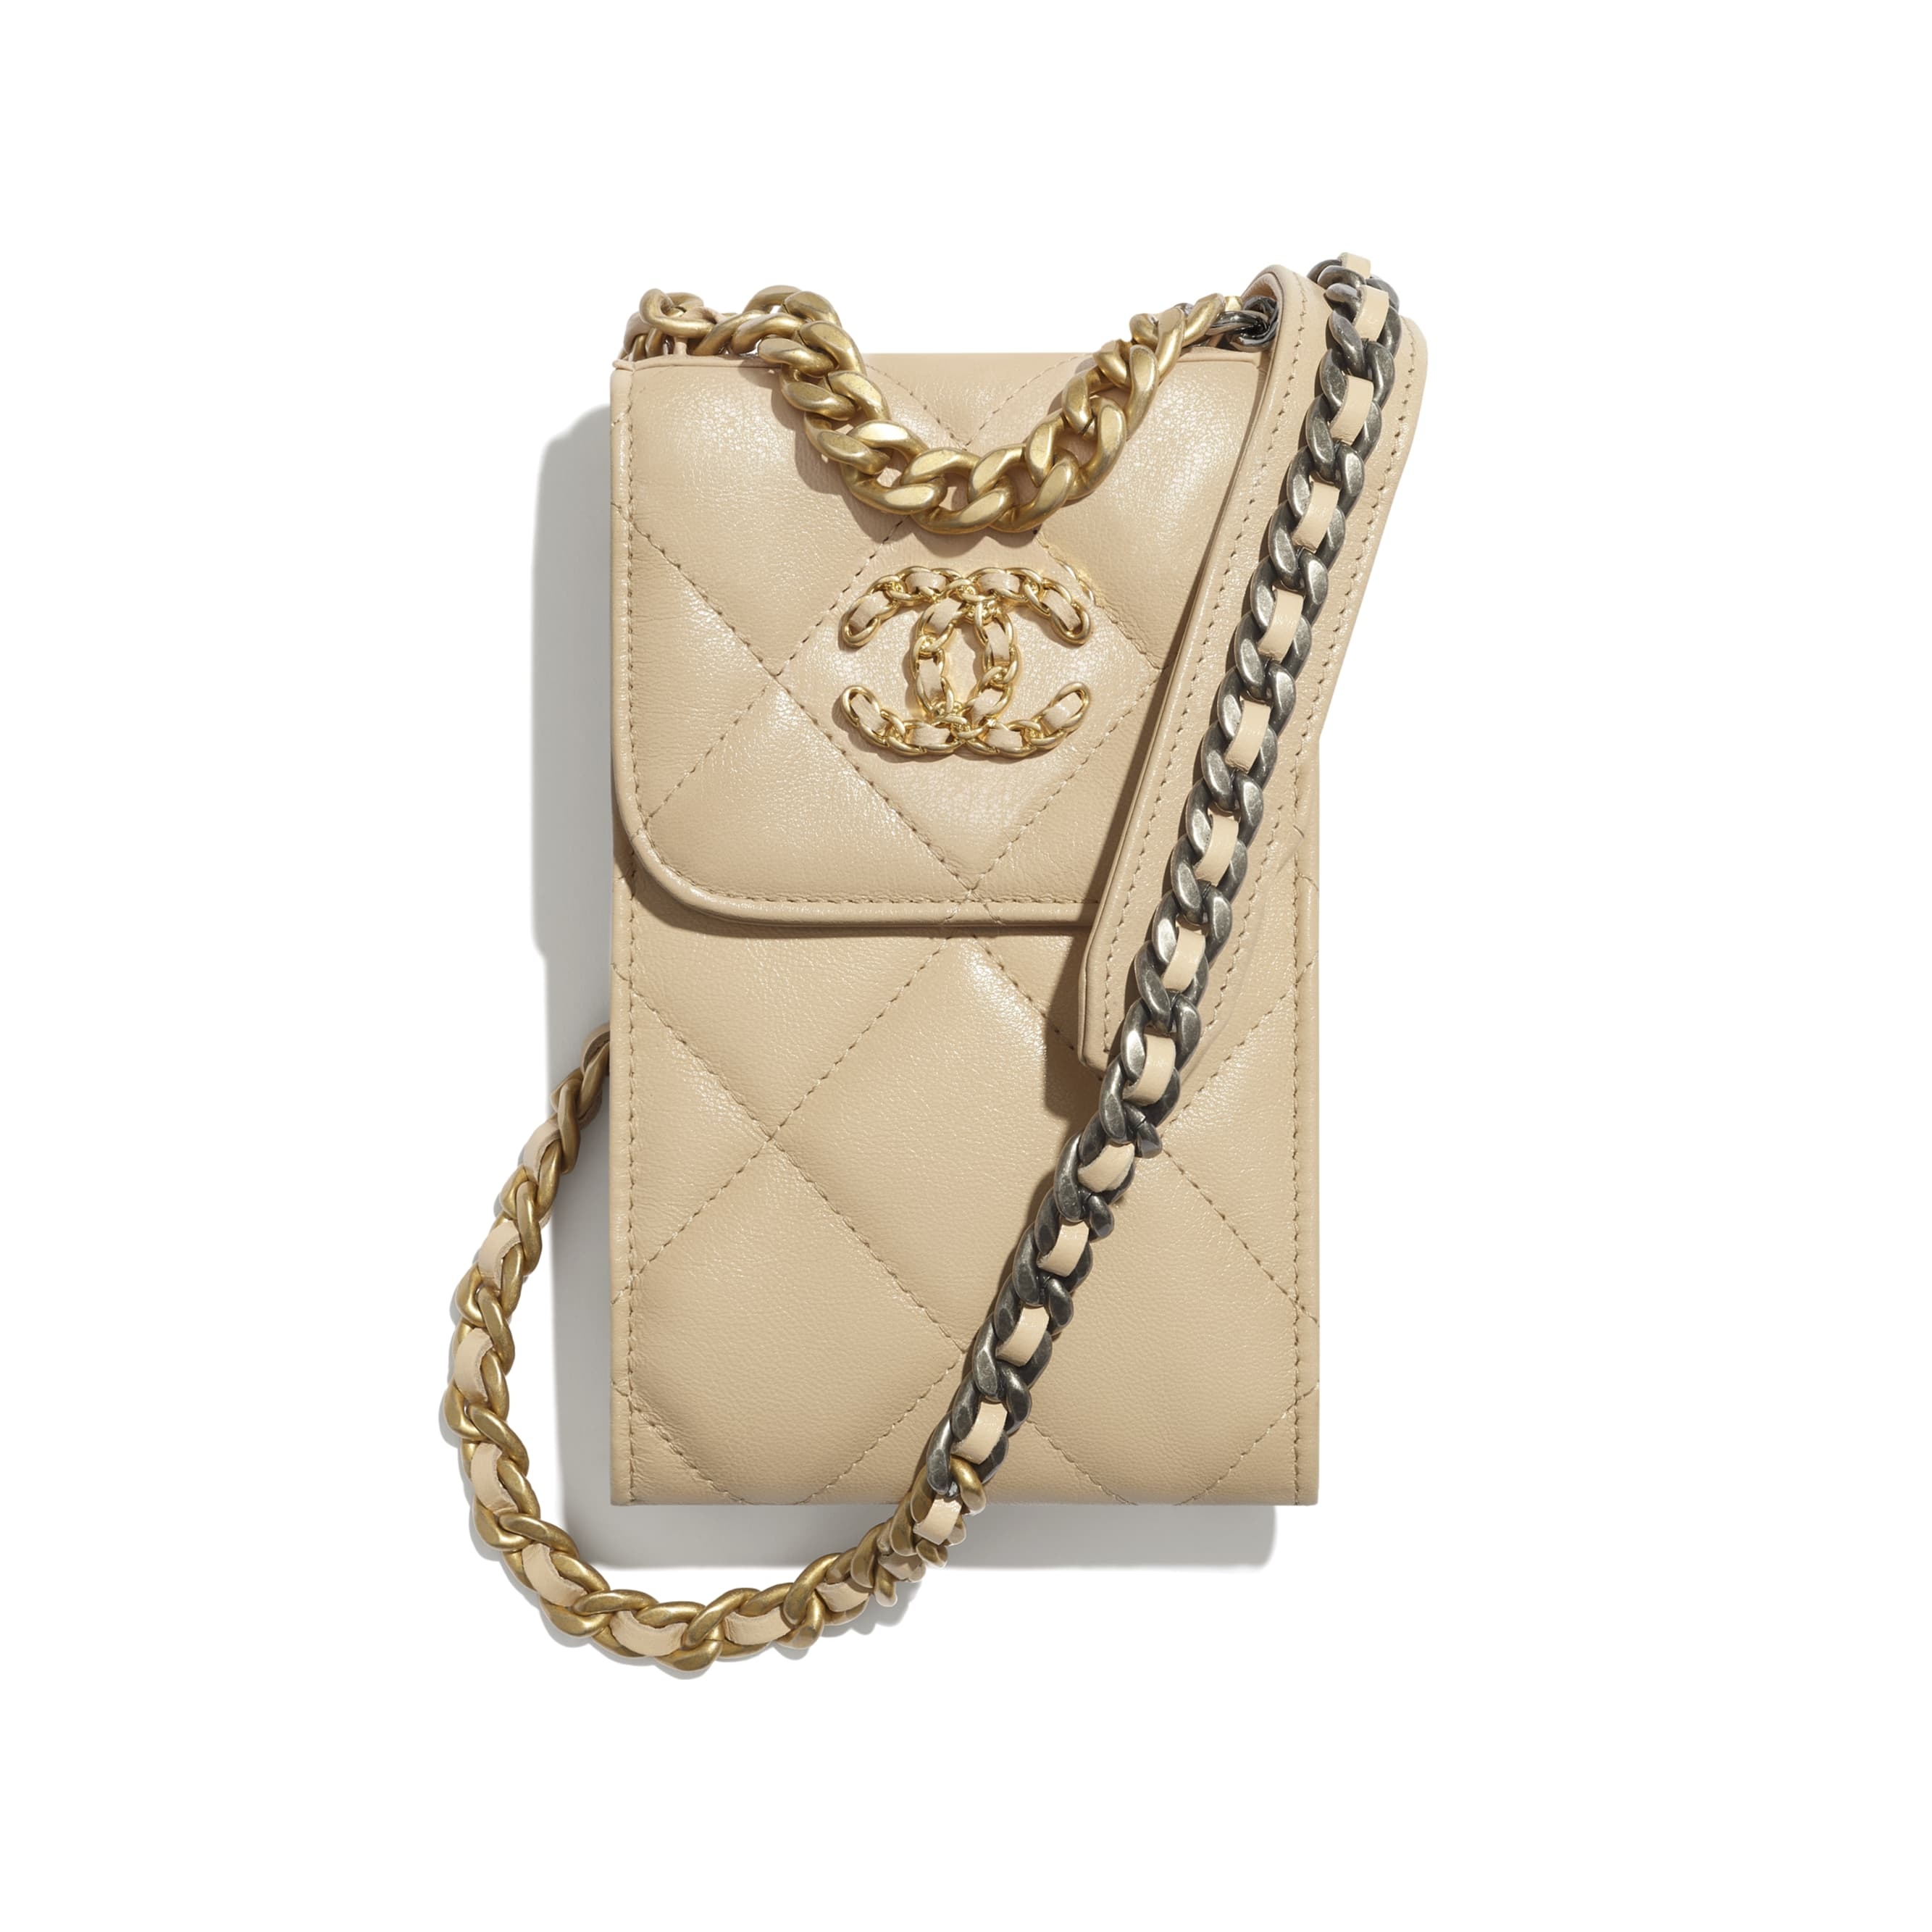 Clutch With Chain - Beige - Shiny Goatskin, Gold-Tone, Silver-Tone & Ruthenium-Finish Metal - CHANEL - Default view - see standard sized version